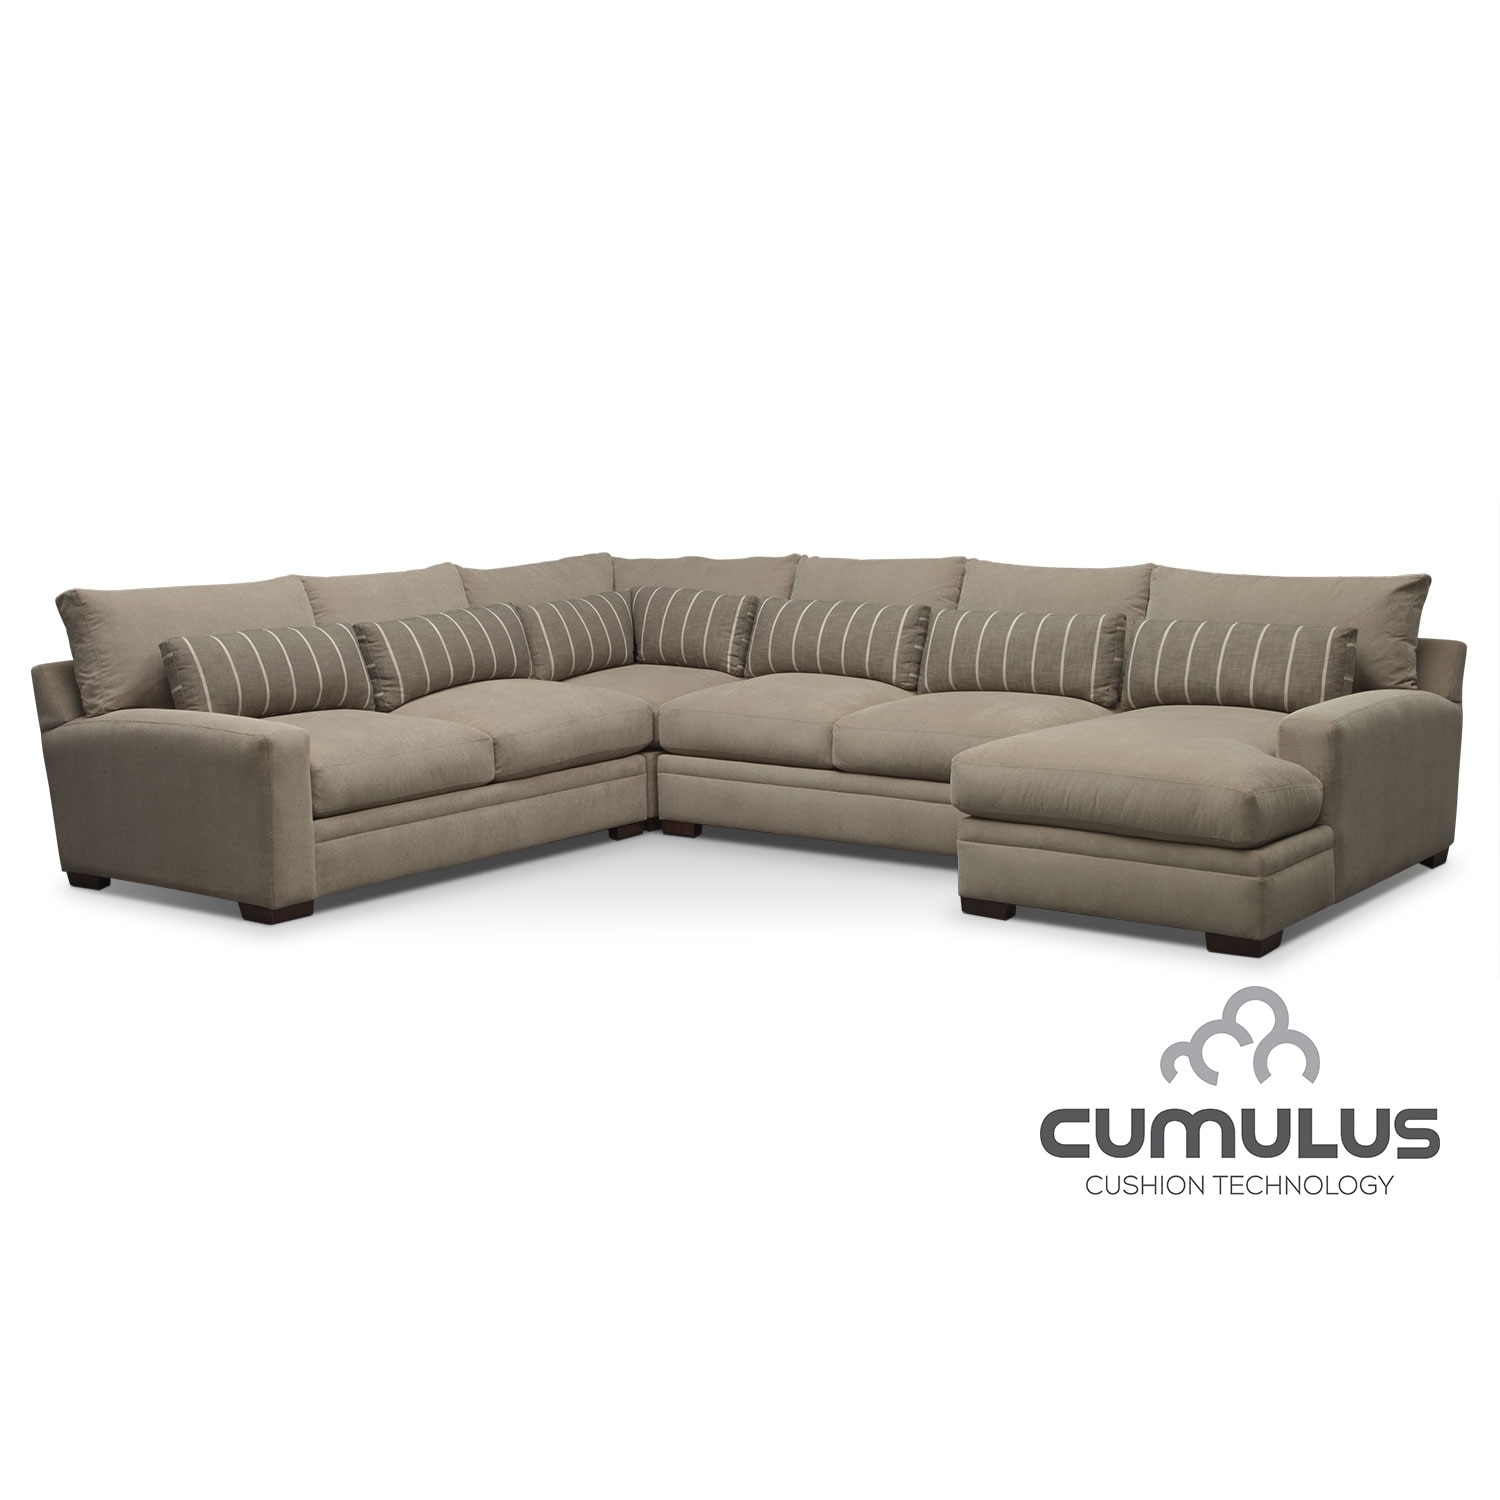 American Signature Furniture Sectionals #17: Living Room Furniture - Ventura 4-Piece Right-Facing Sectional - Buff